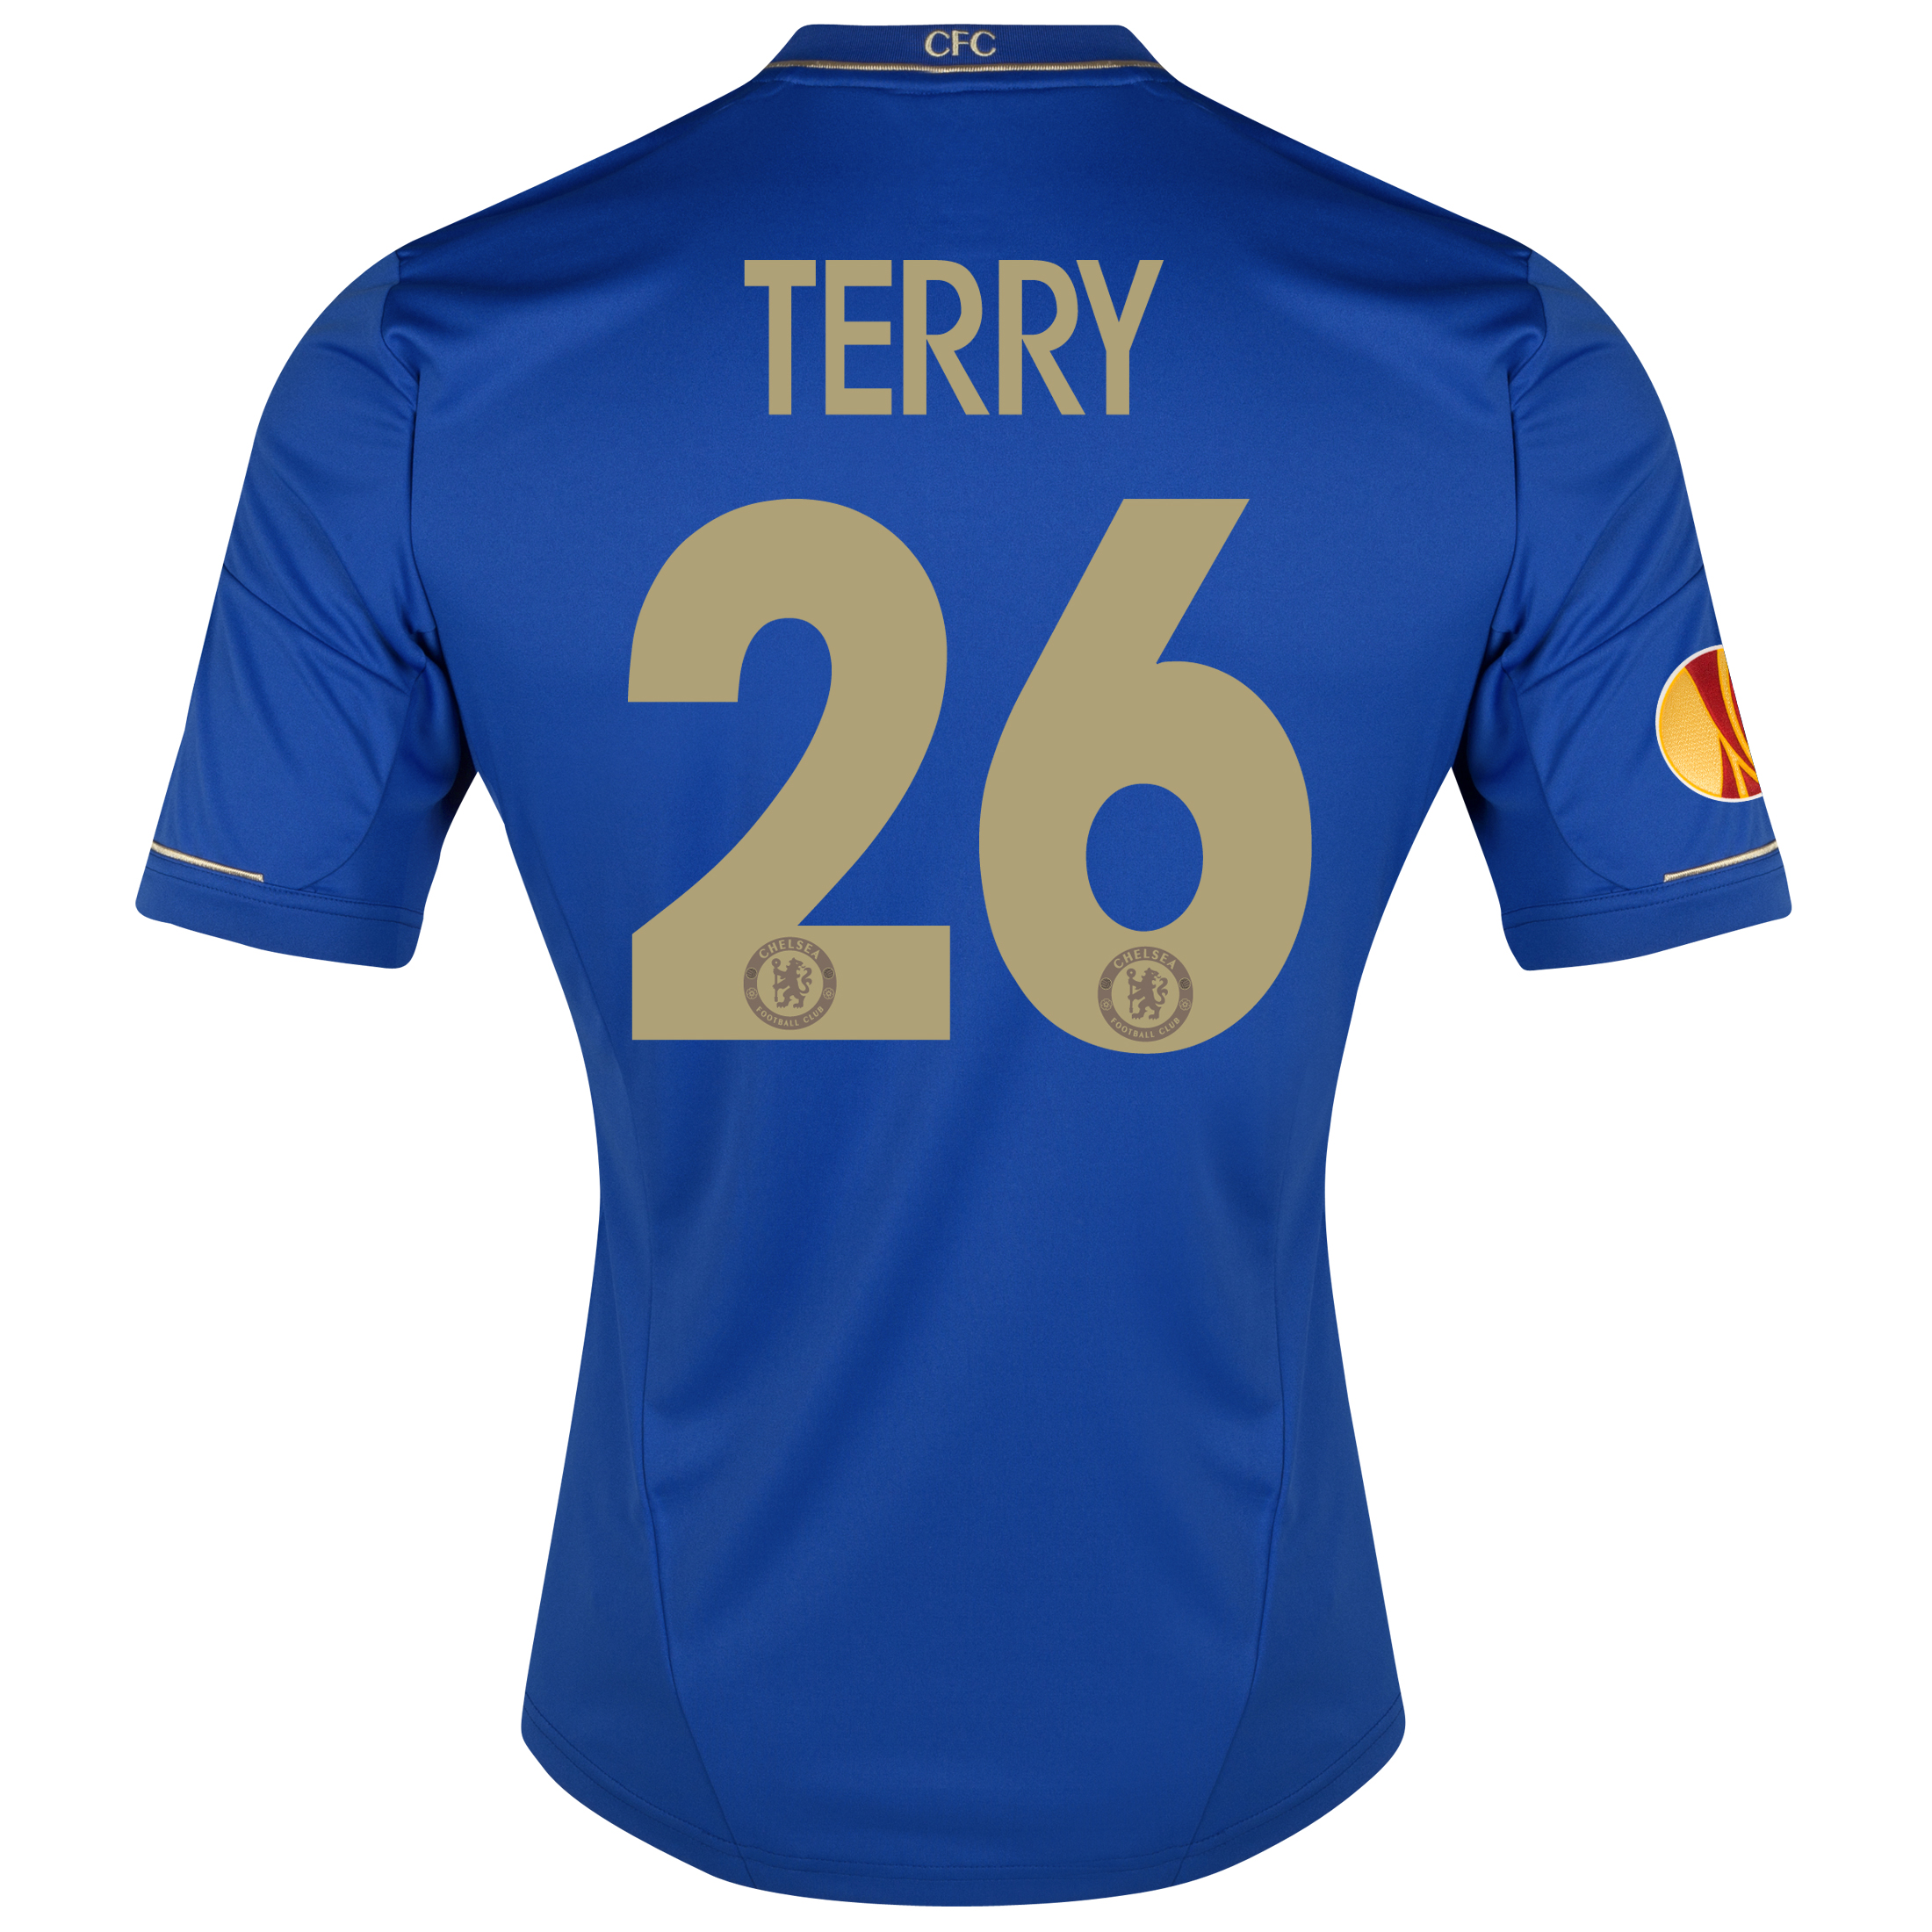 Chelsea UEFA Europa League Home Shirt 2012/13 with Terry 26 printing Including Europa Badge